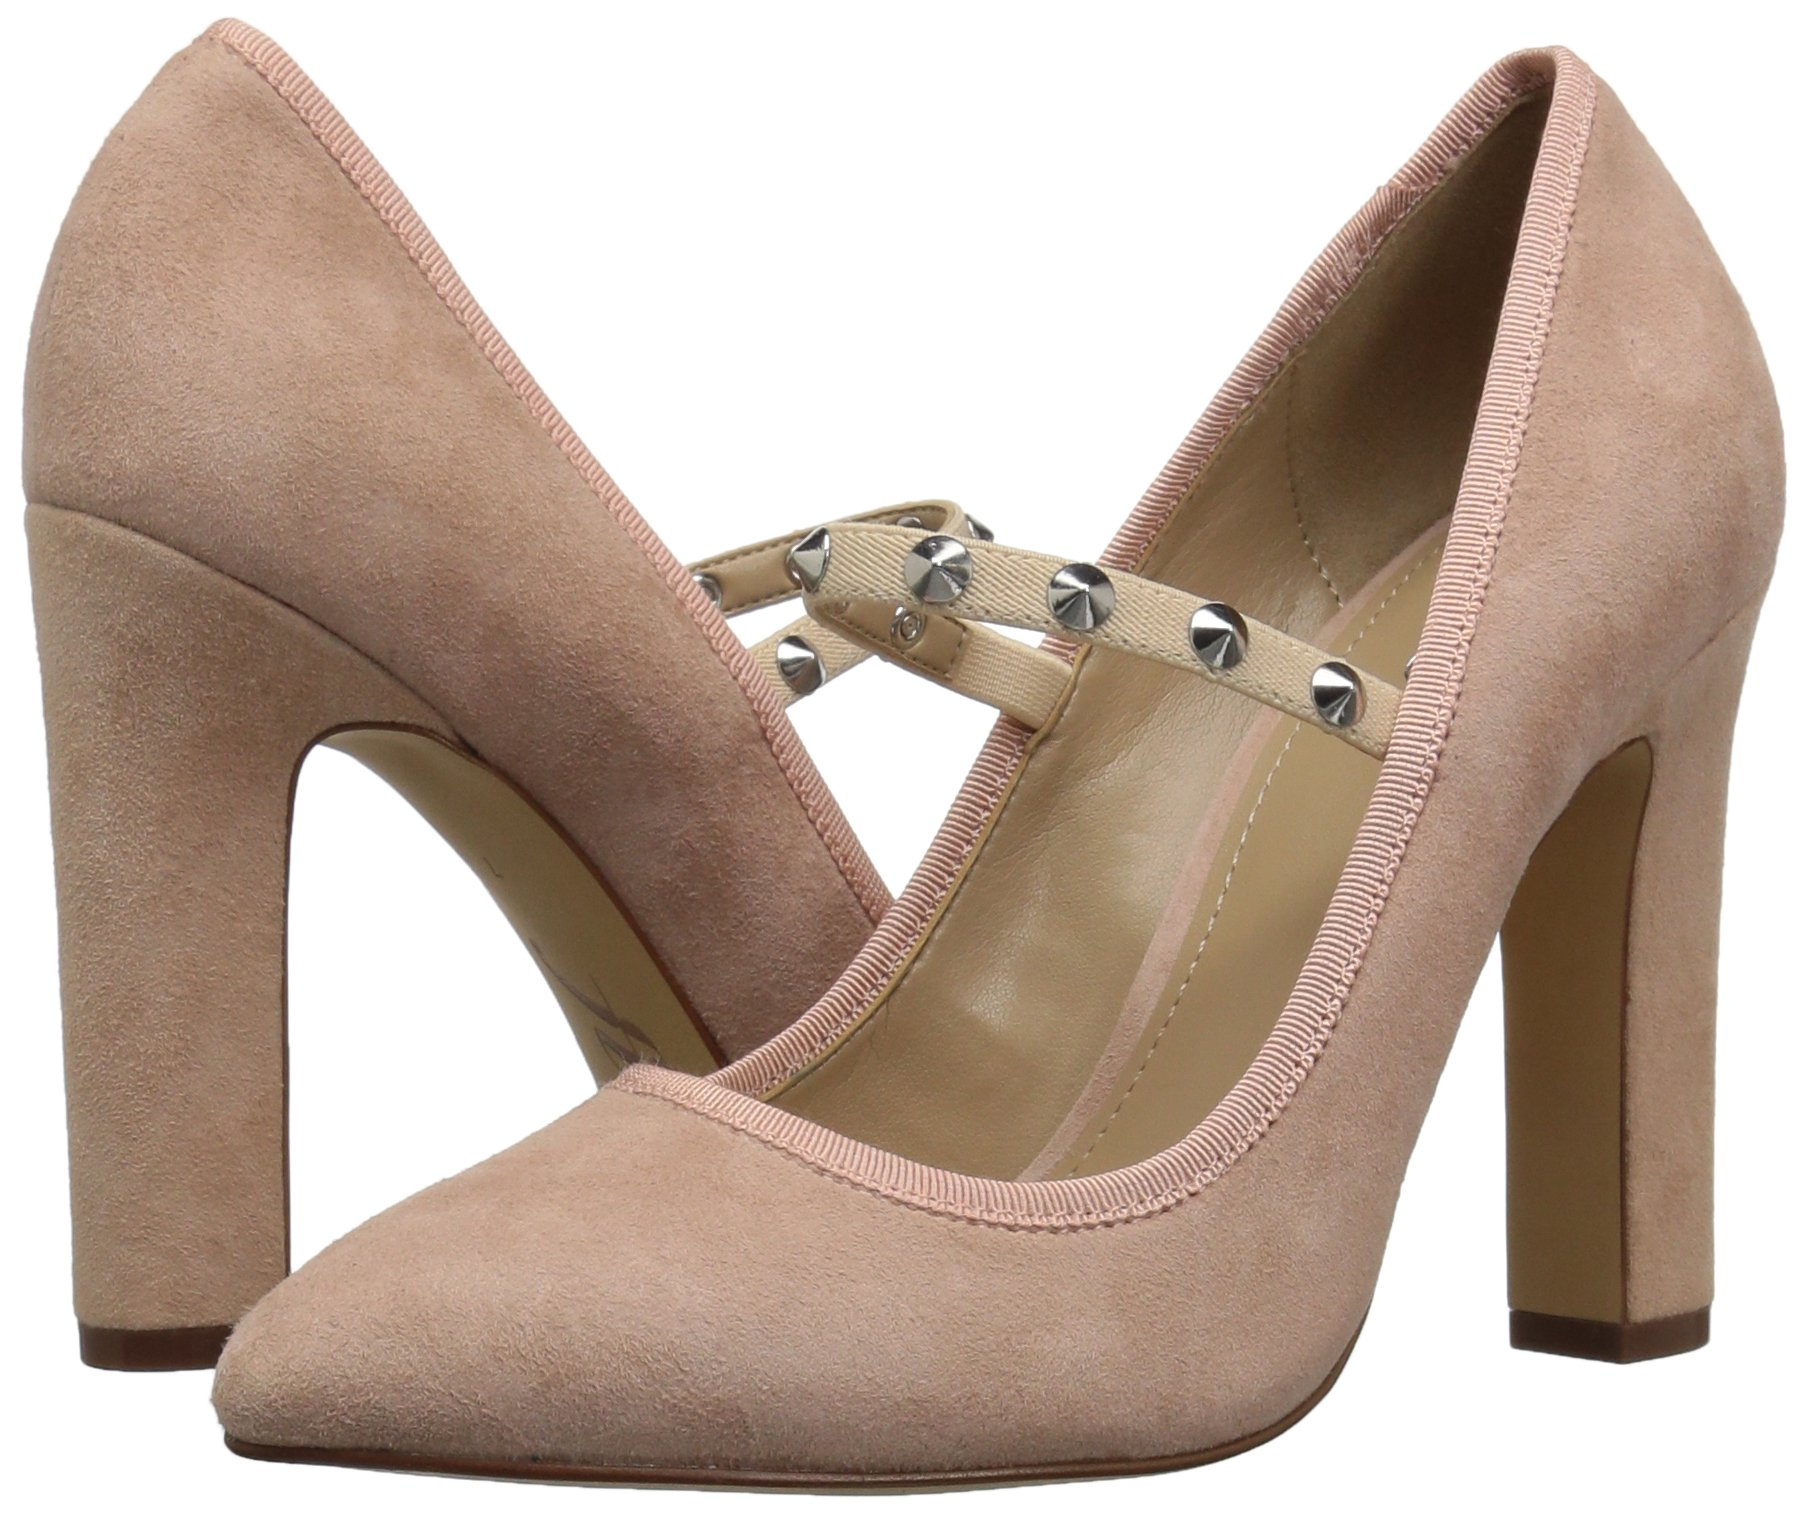 The Fix Women's Shay Studded Mary Jane Dress Pump, Petal Blush, 10 M US by The Fix (Image #6)